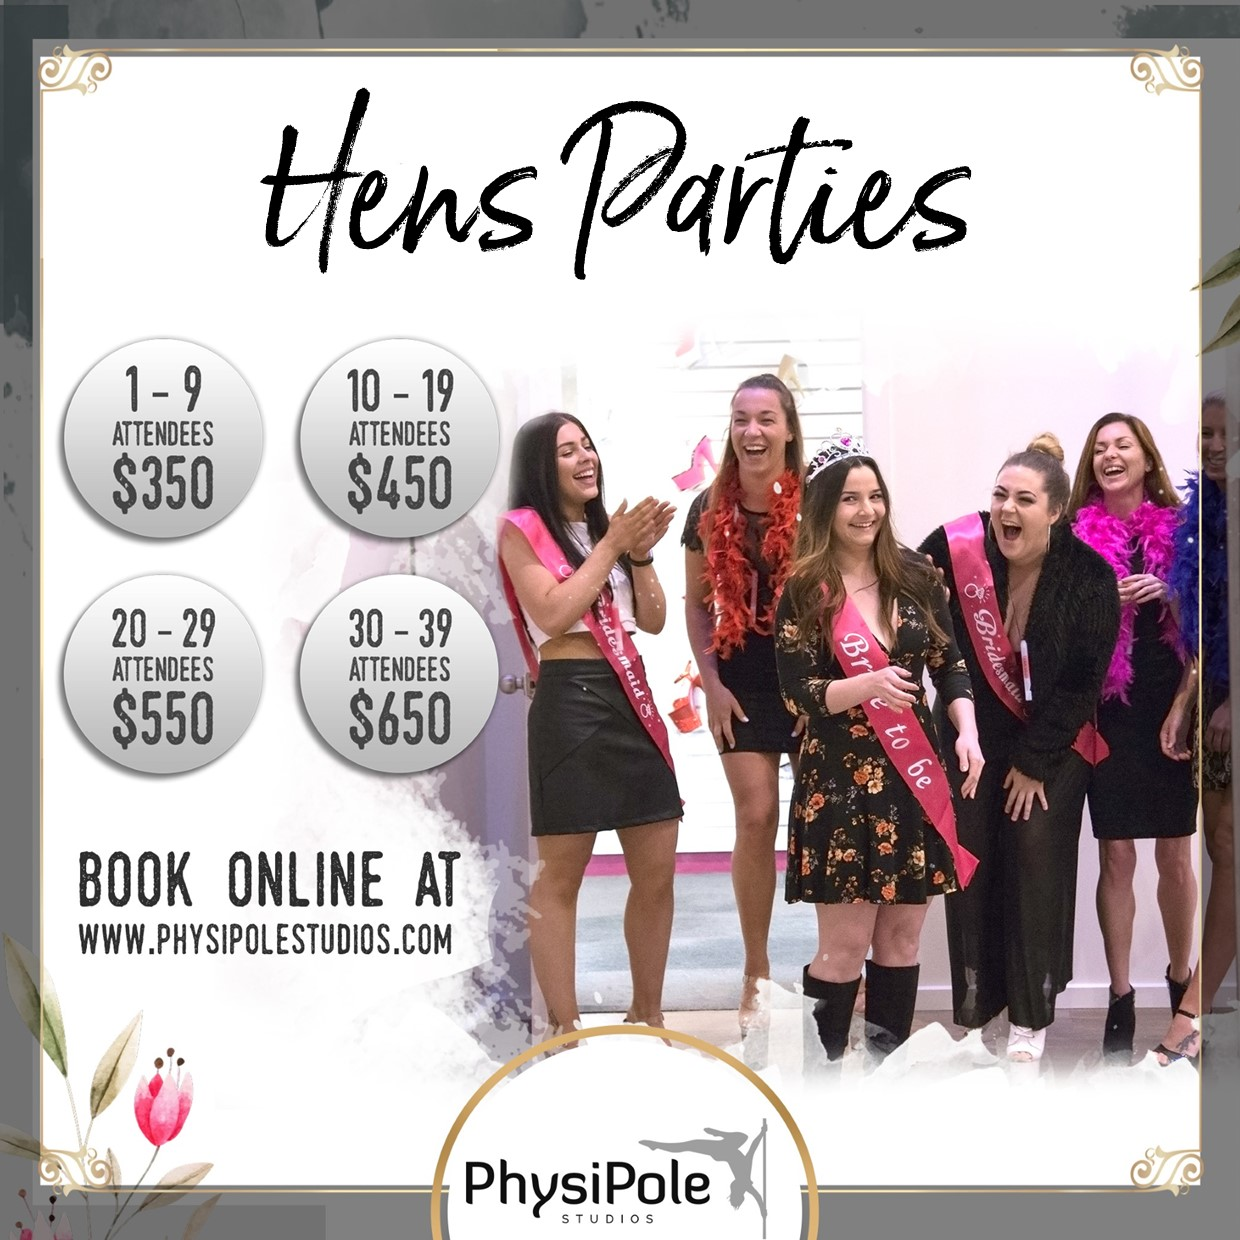 PhysiPole Hens Parties Facebook Square